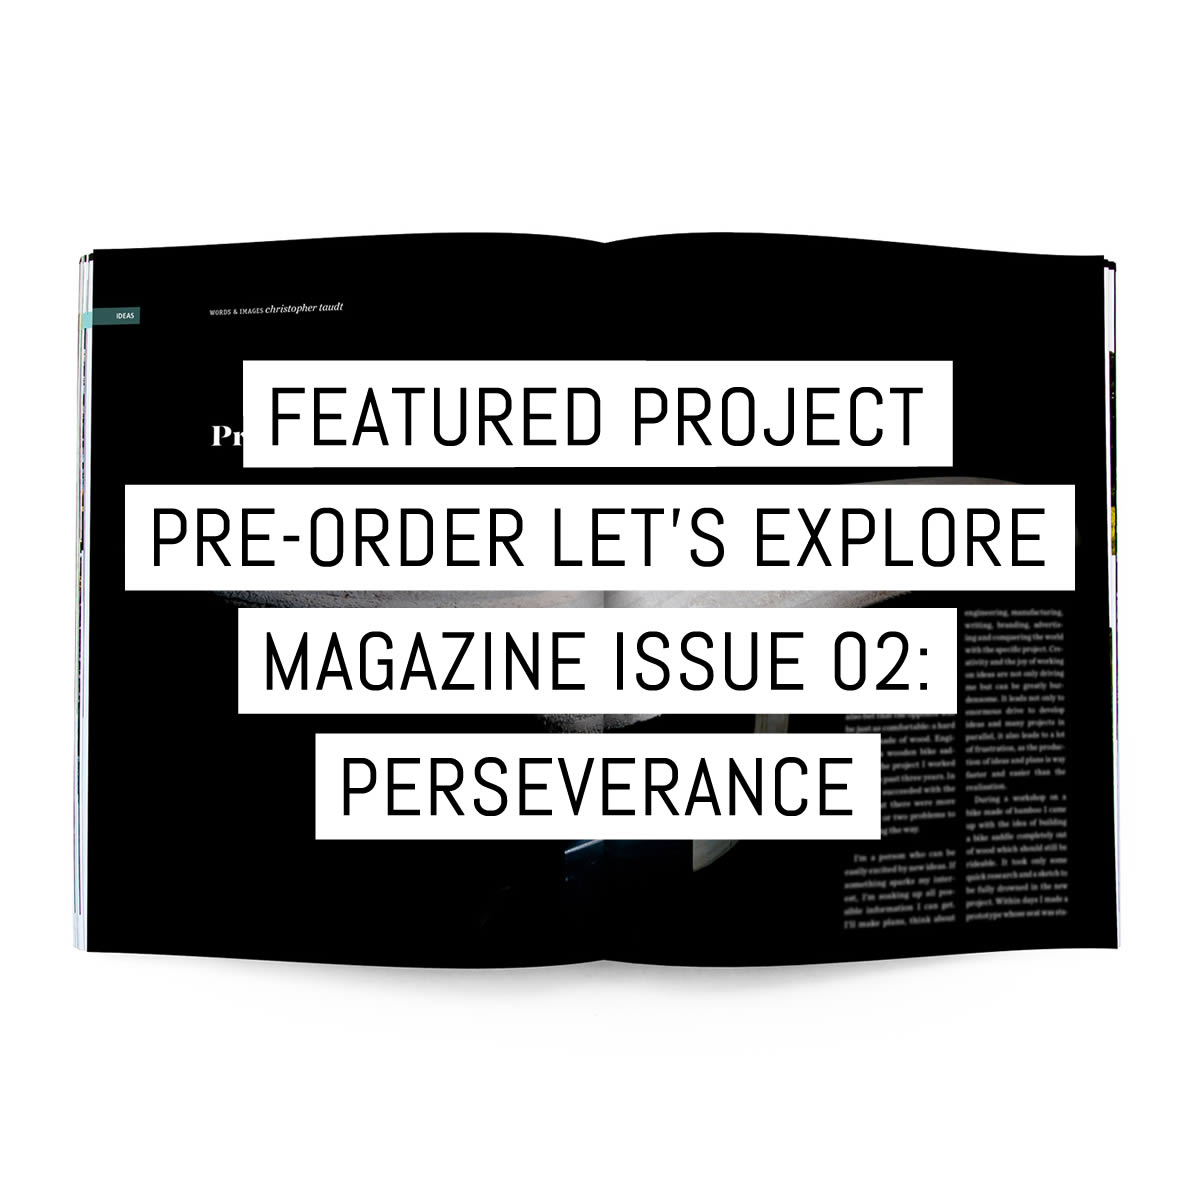 Cover - Featured project - Pre-order Let's Explore Magazine issue 02